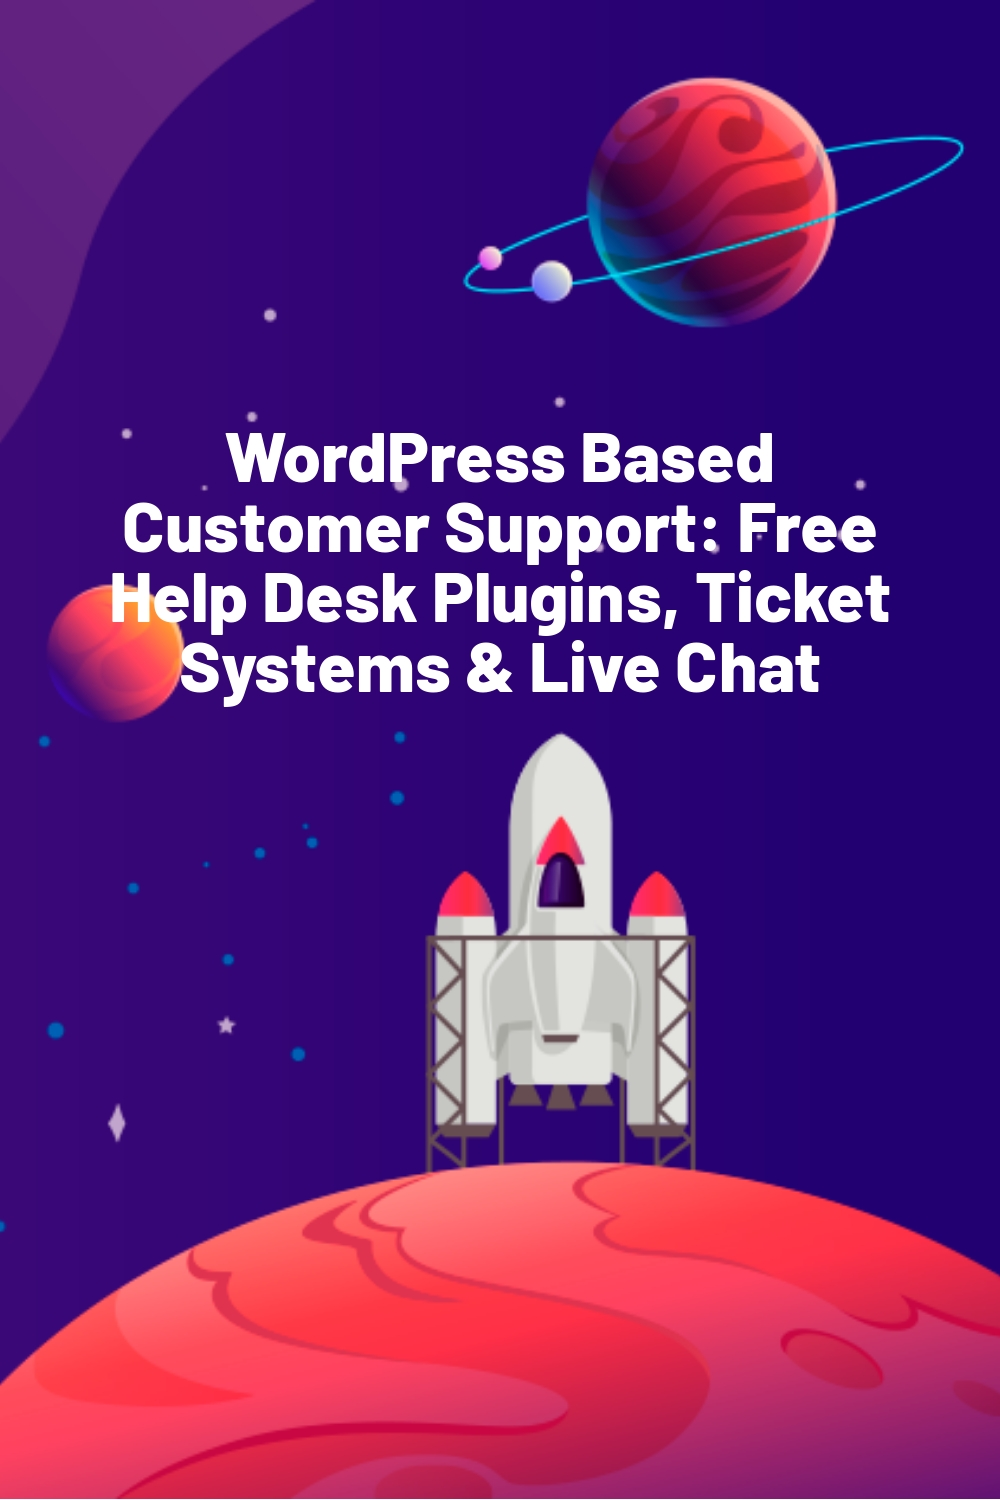 WordPress Based Customer Support: Free Help Desk Plugins, Ticket Systems & Live Chat